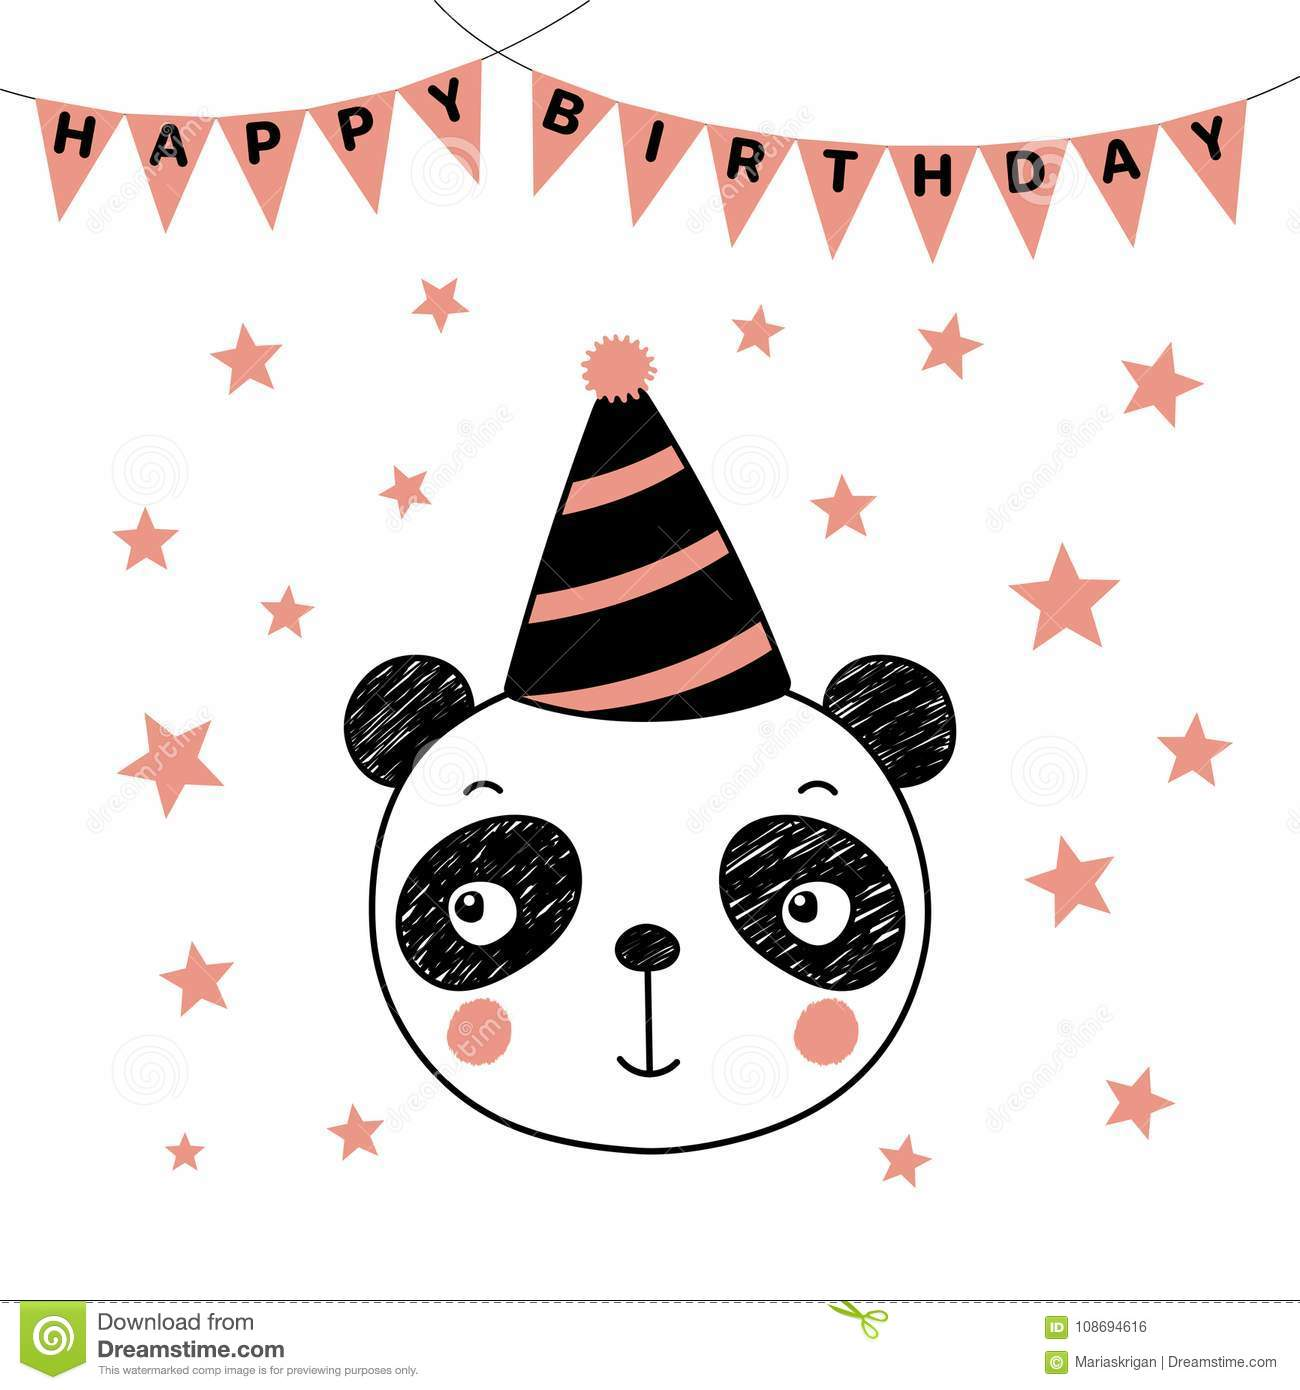 Cute panda in party hat stock vector. Illustration of face - 108694616